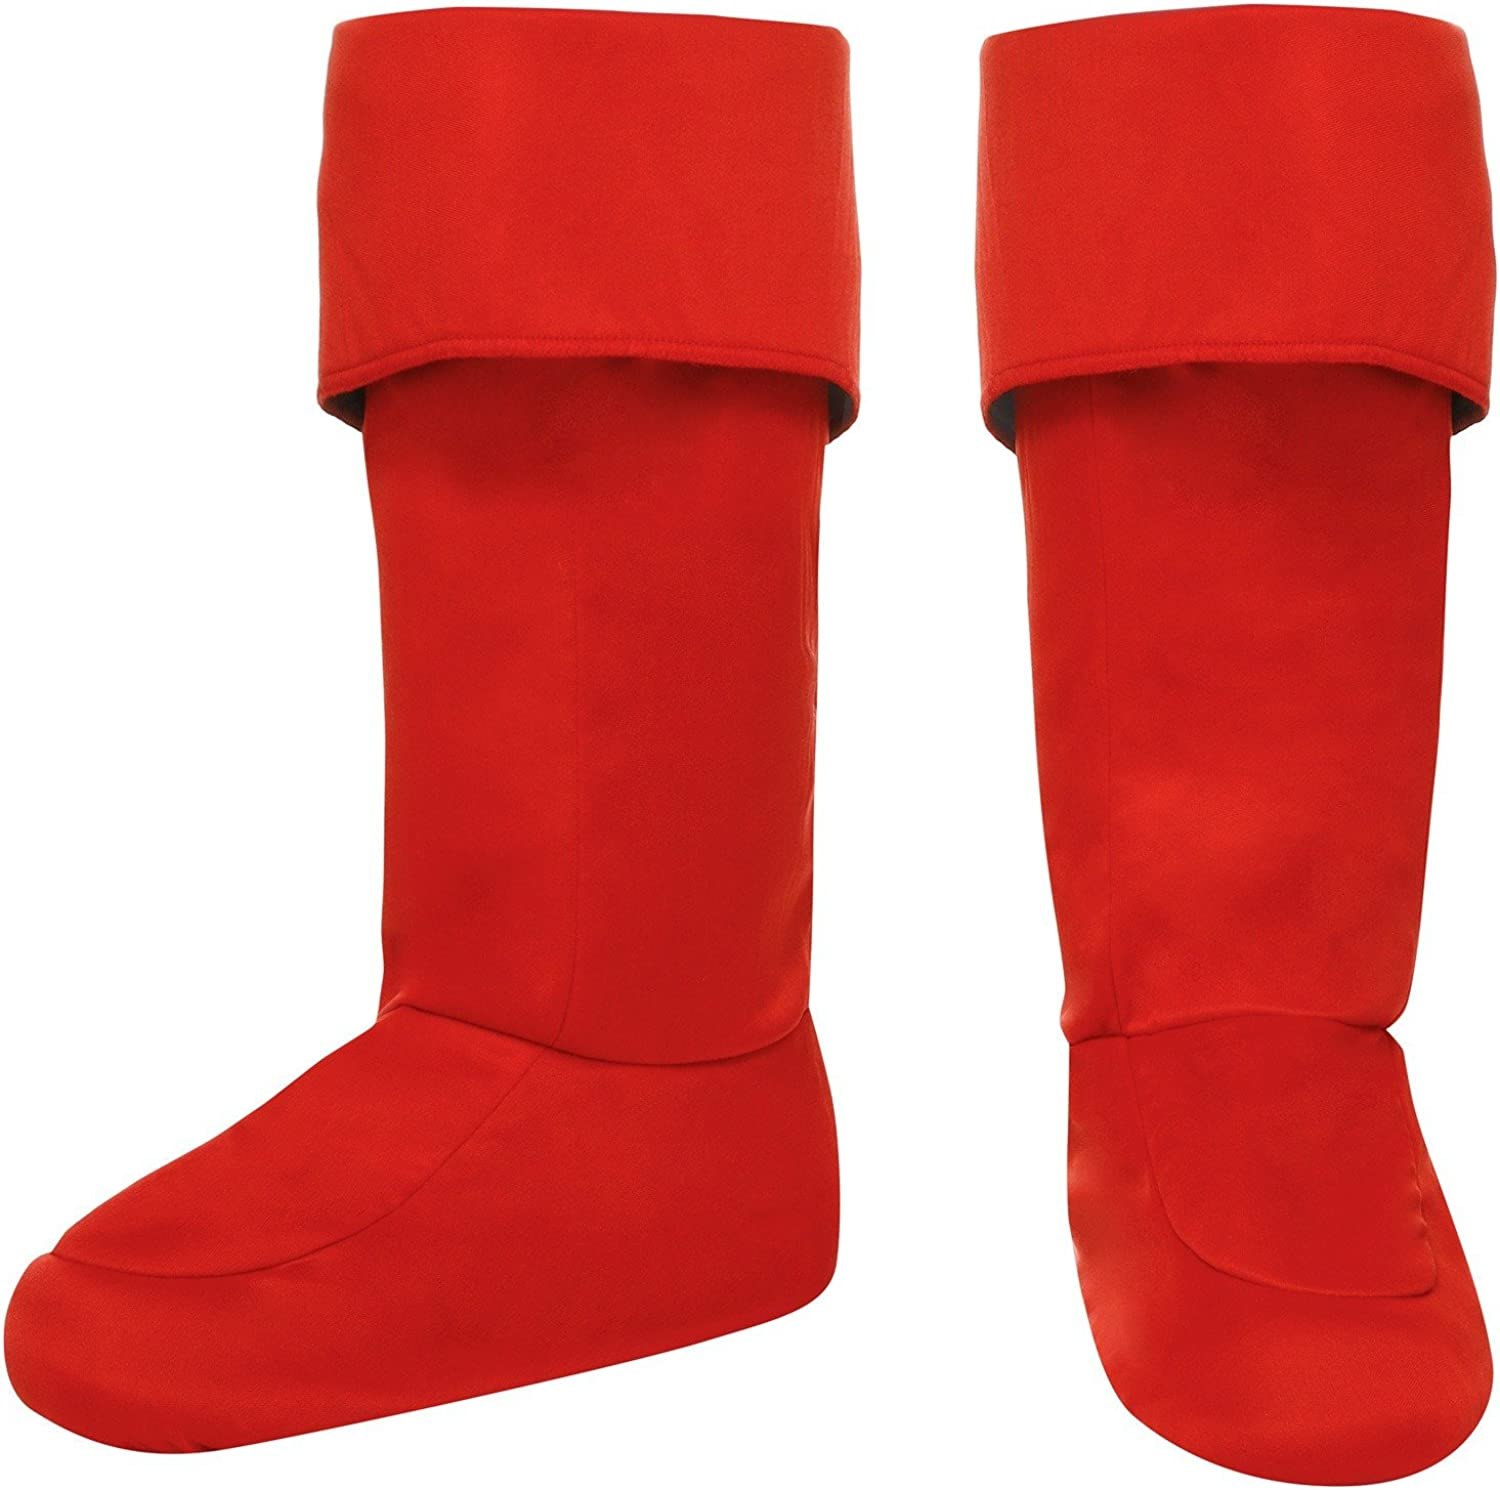 Fun Colorado Springs Mall Costumes Adult Red Covers Boot Max 48% OFF Superhero